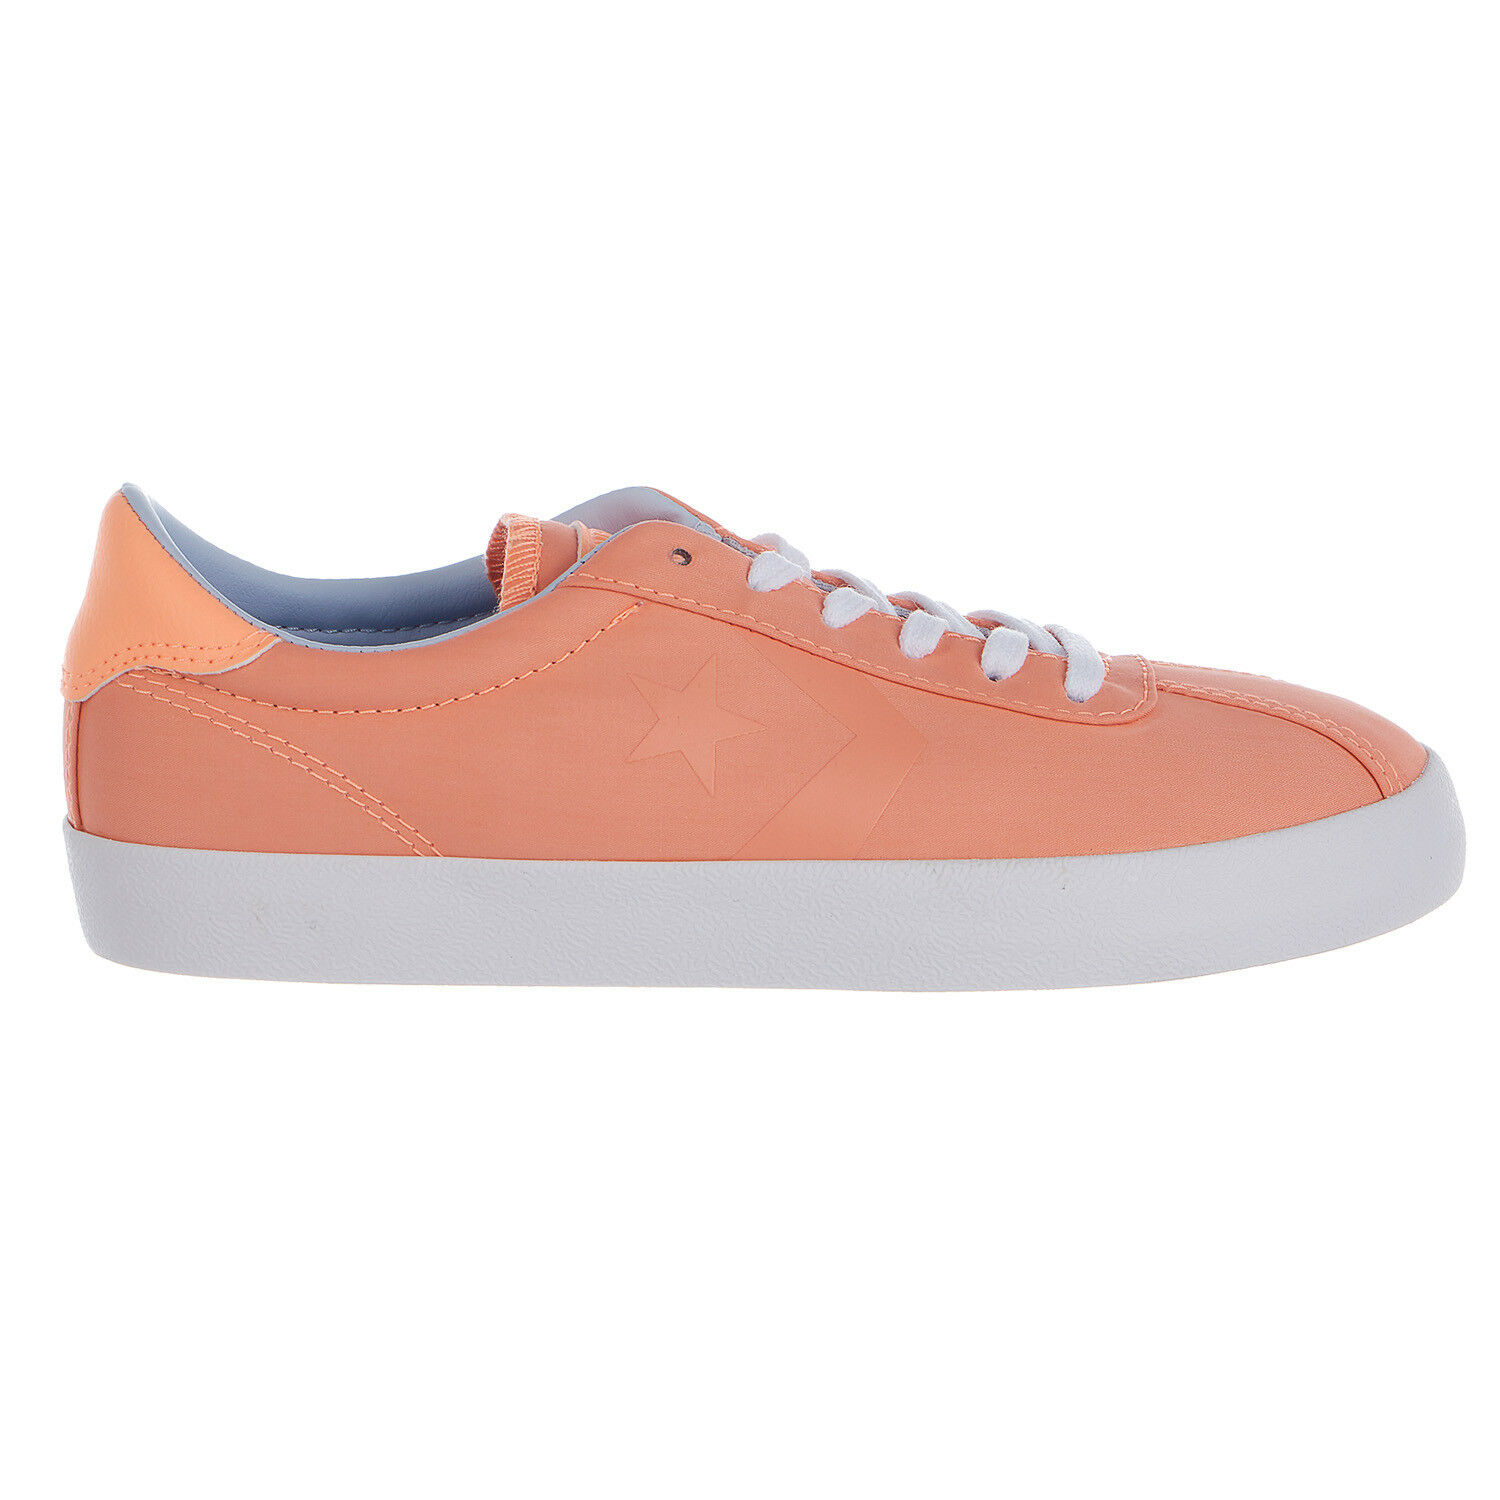 Converse BREAKPOINT LOW TOP  - Womens